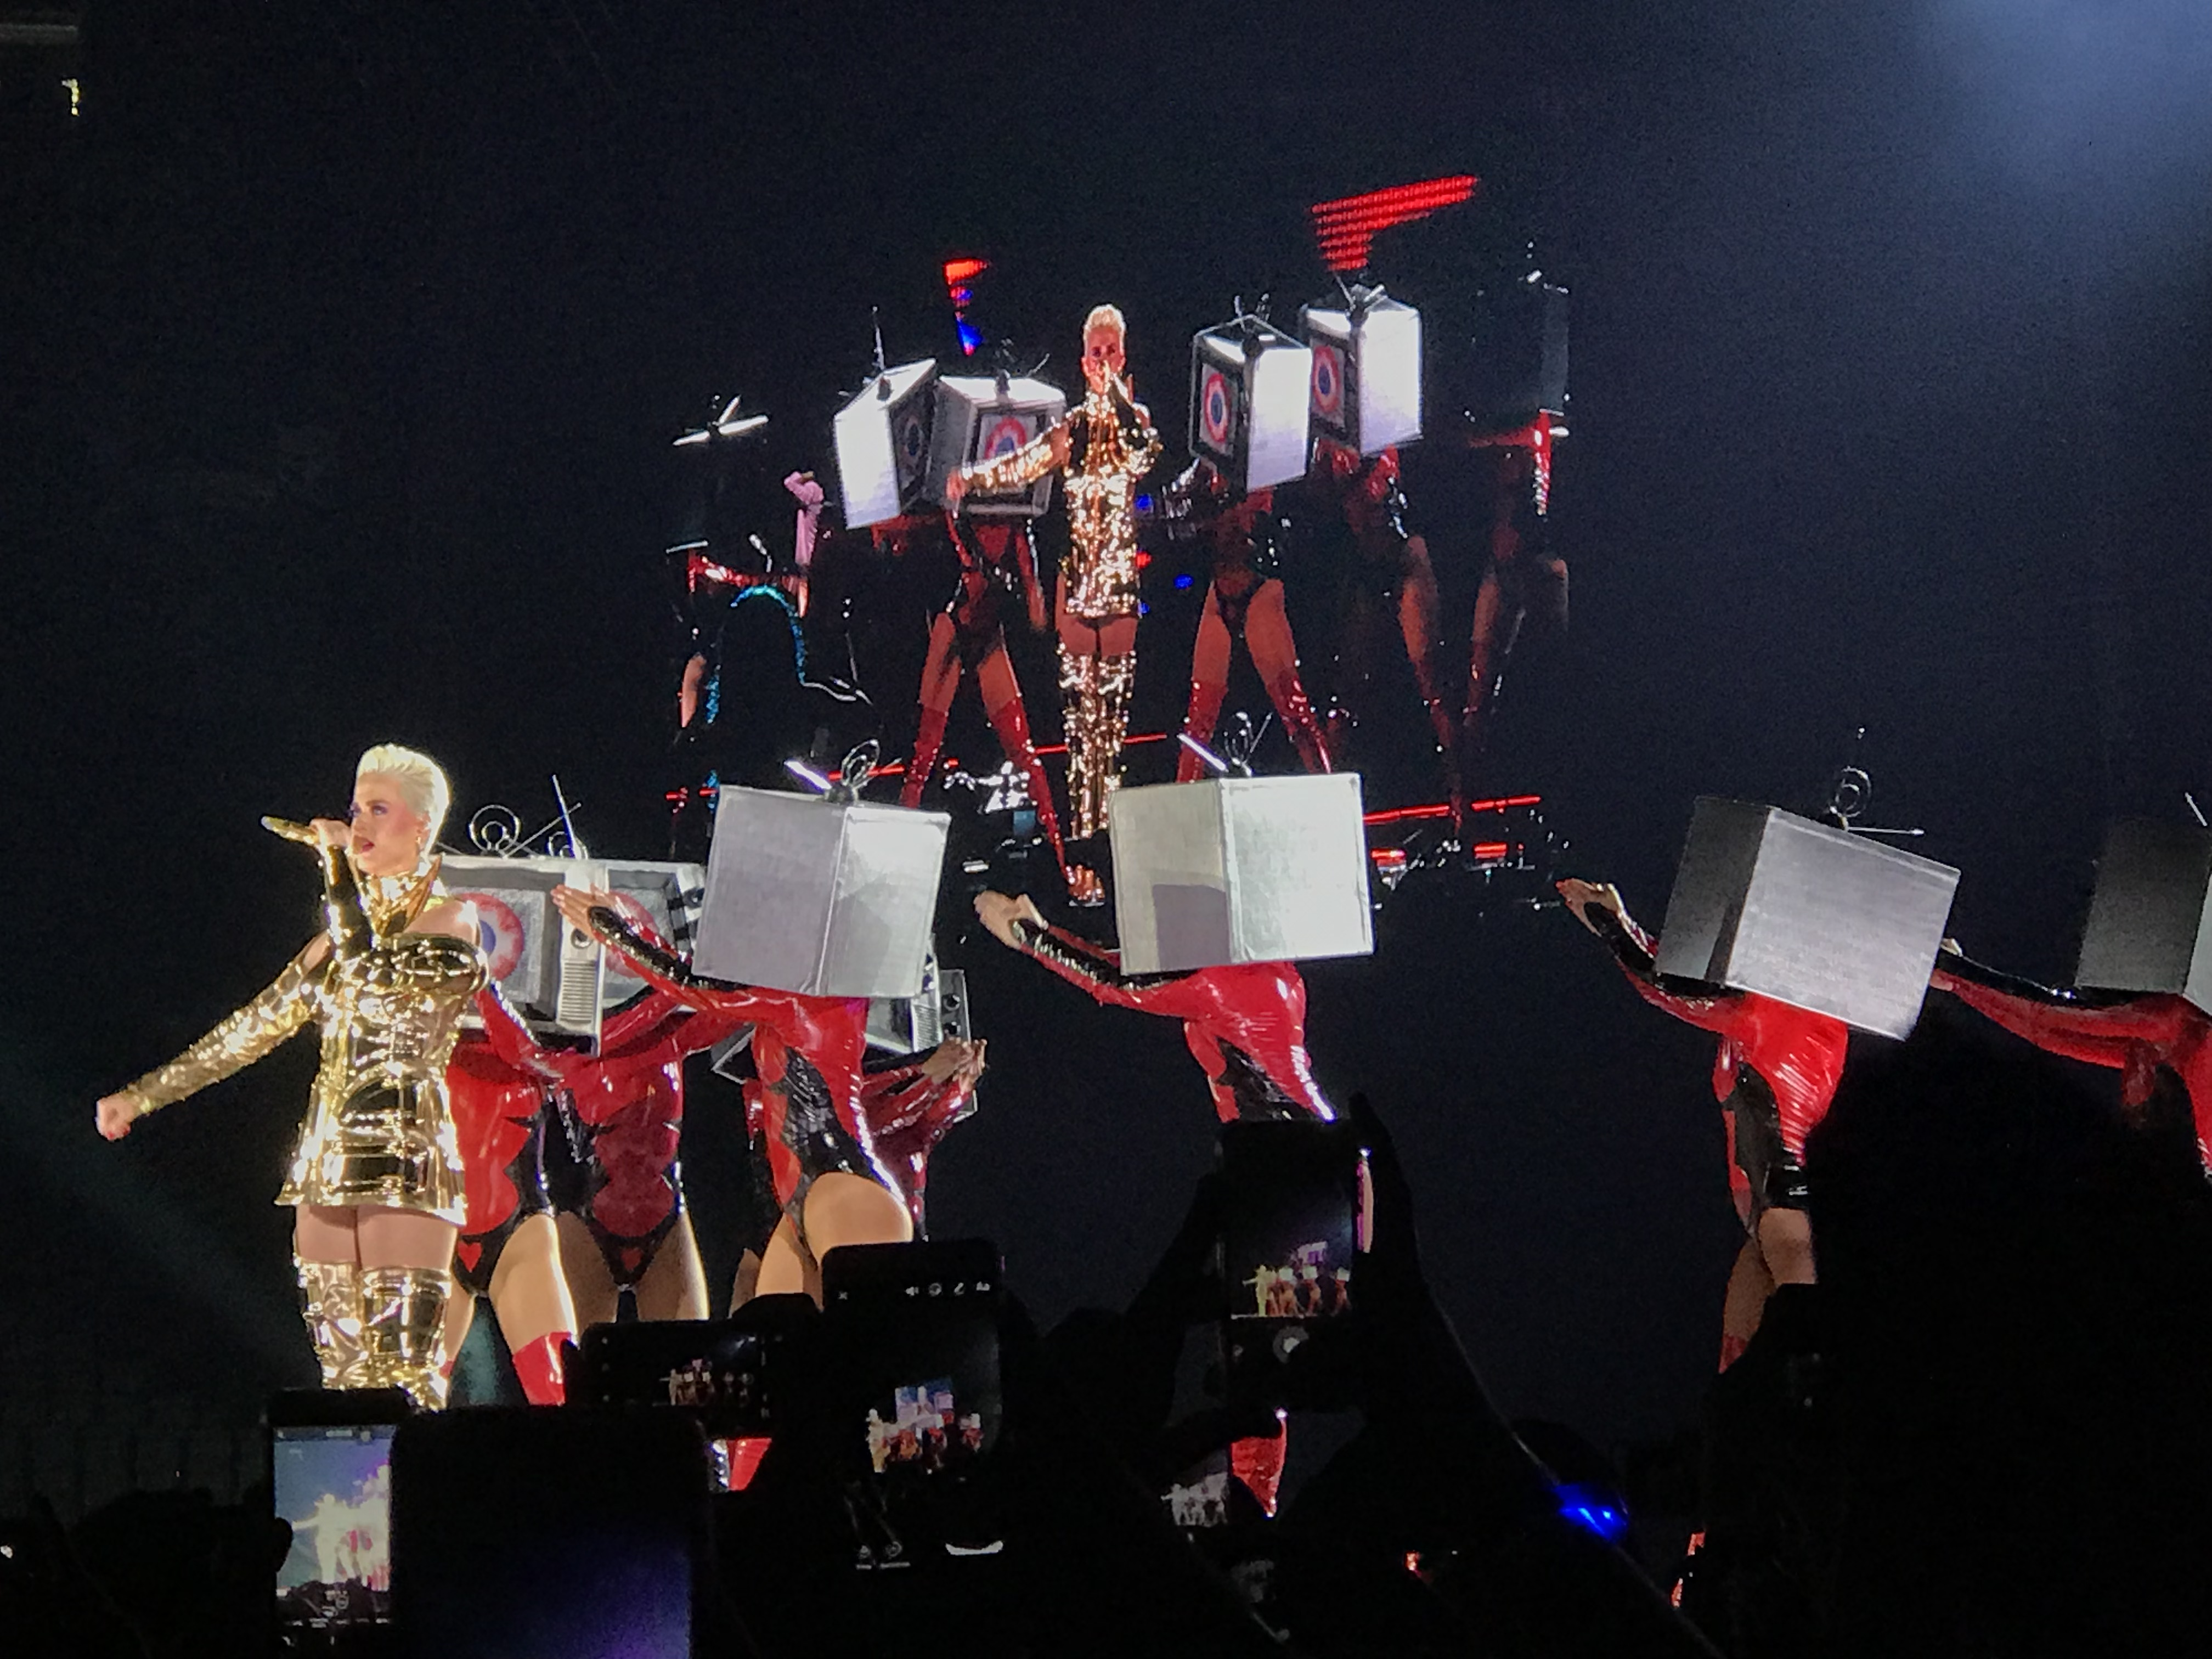 katy-perry-show-sp6